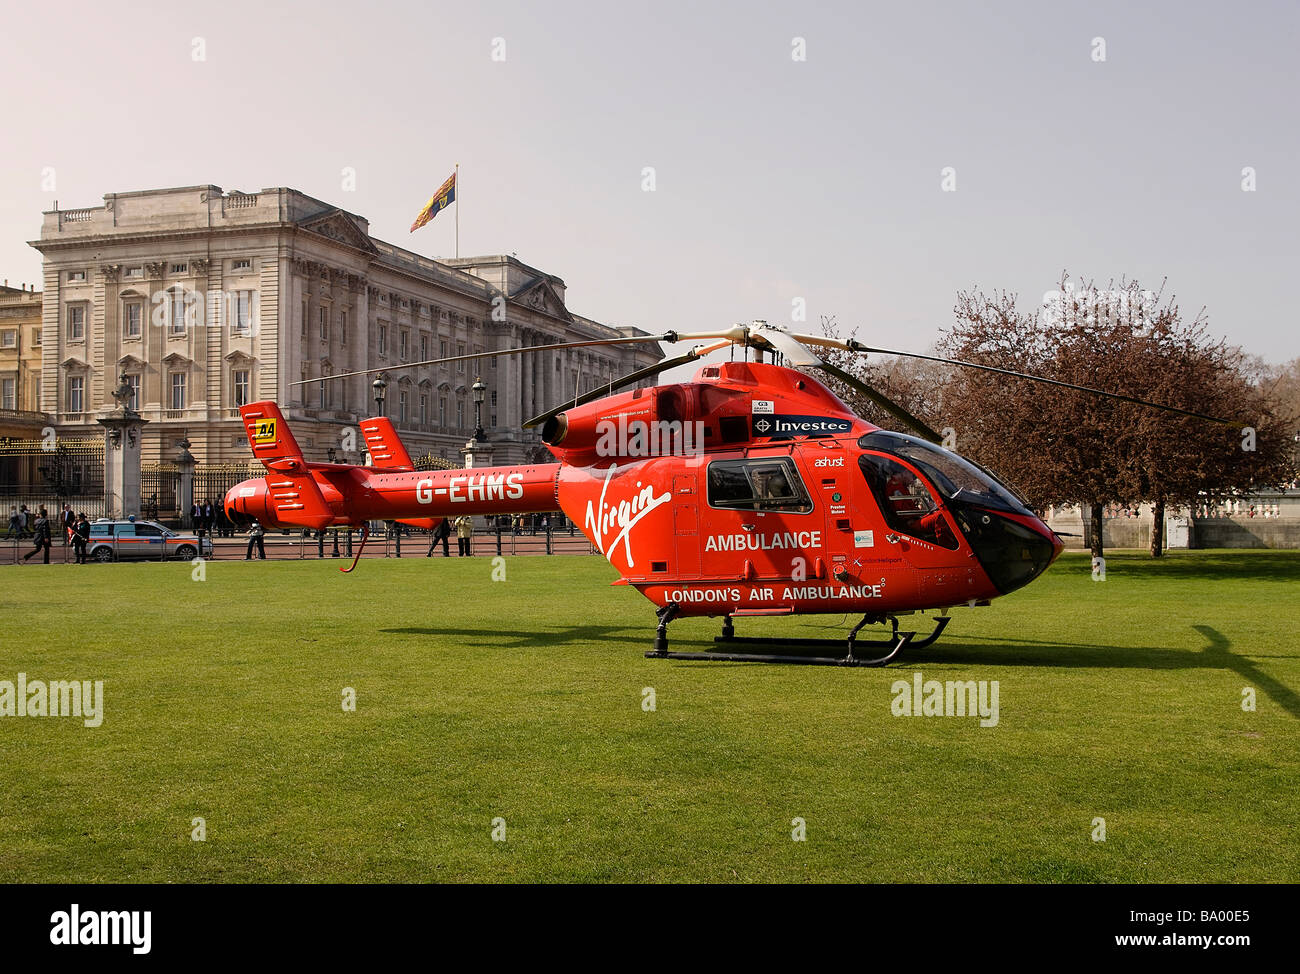 London's Air Ambulance HEMS takes off in front of Buckingham Palace after responding to an emergency - Stock Image